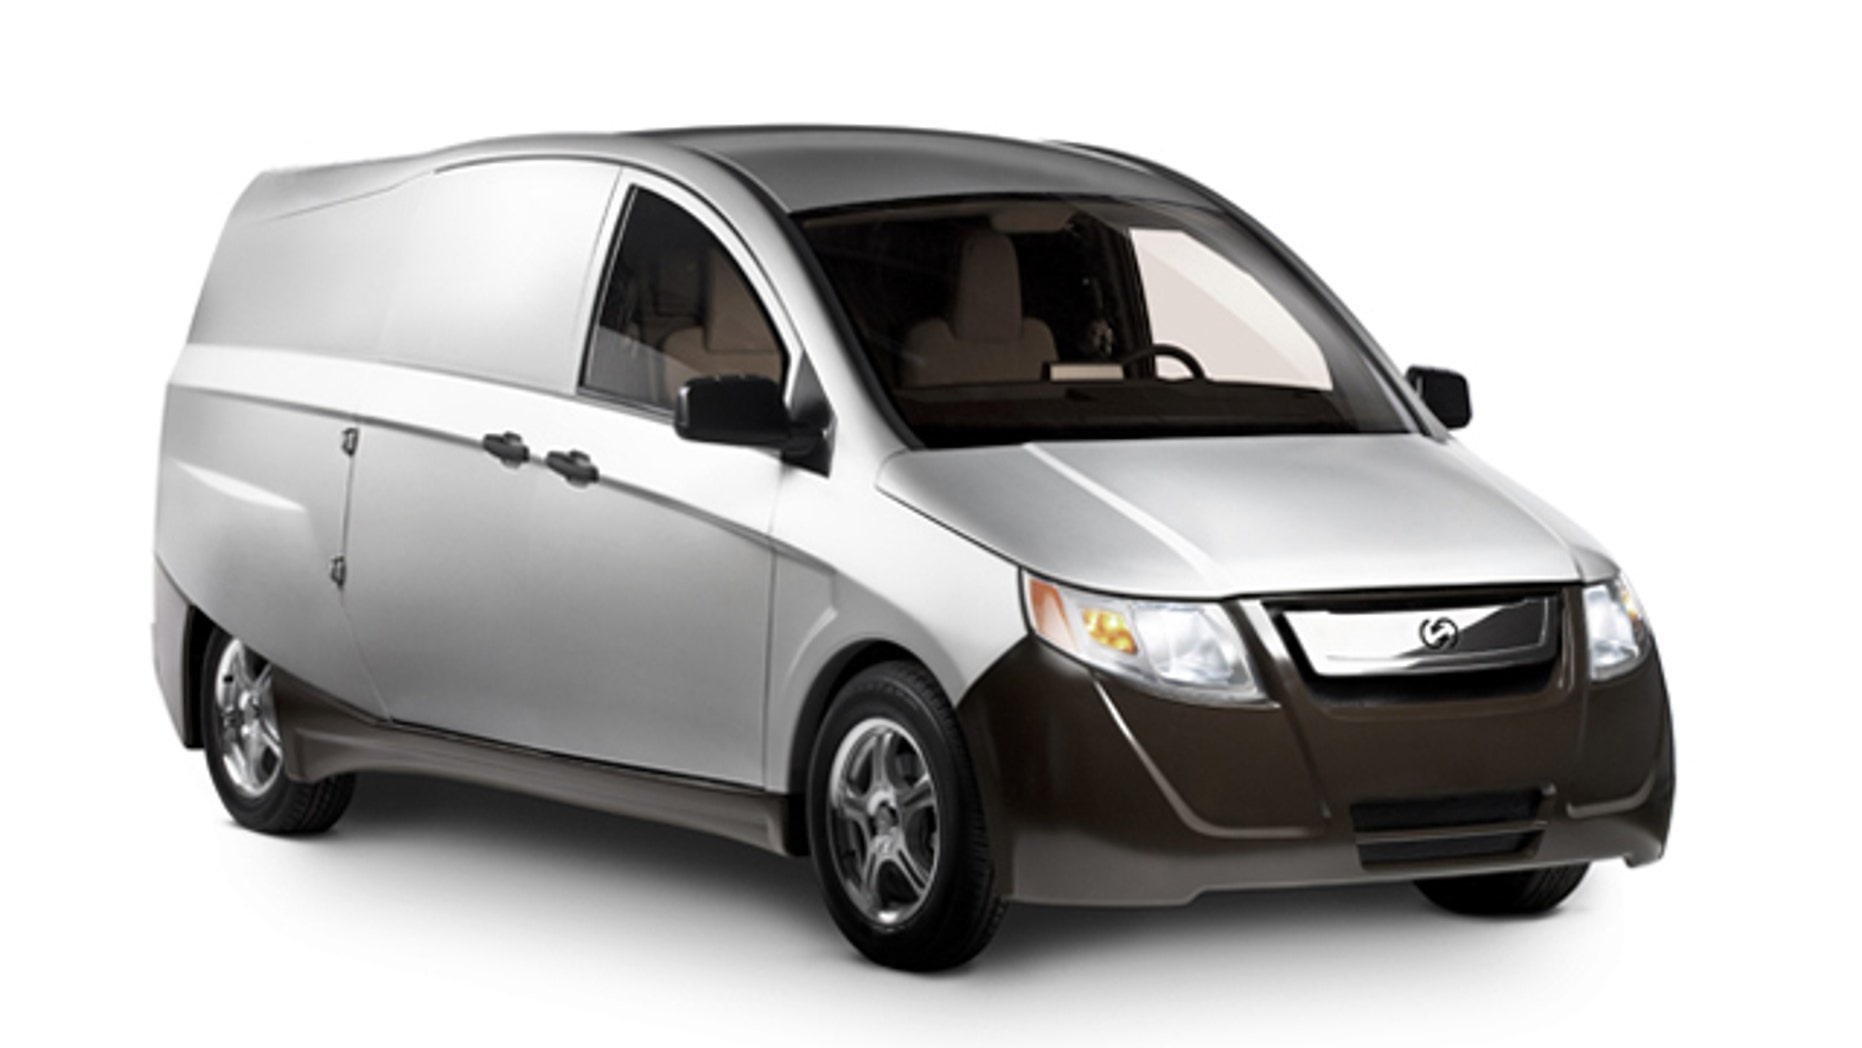 This photo shows an IDEA vehicle made by Bright Automotive.